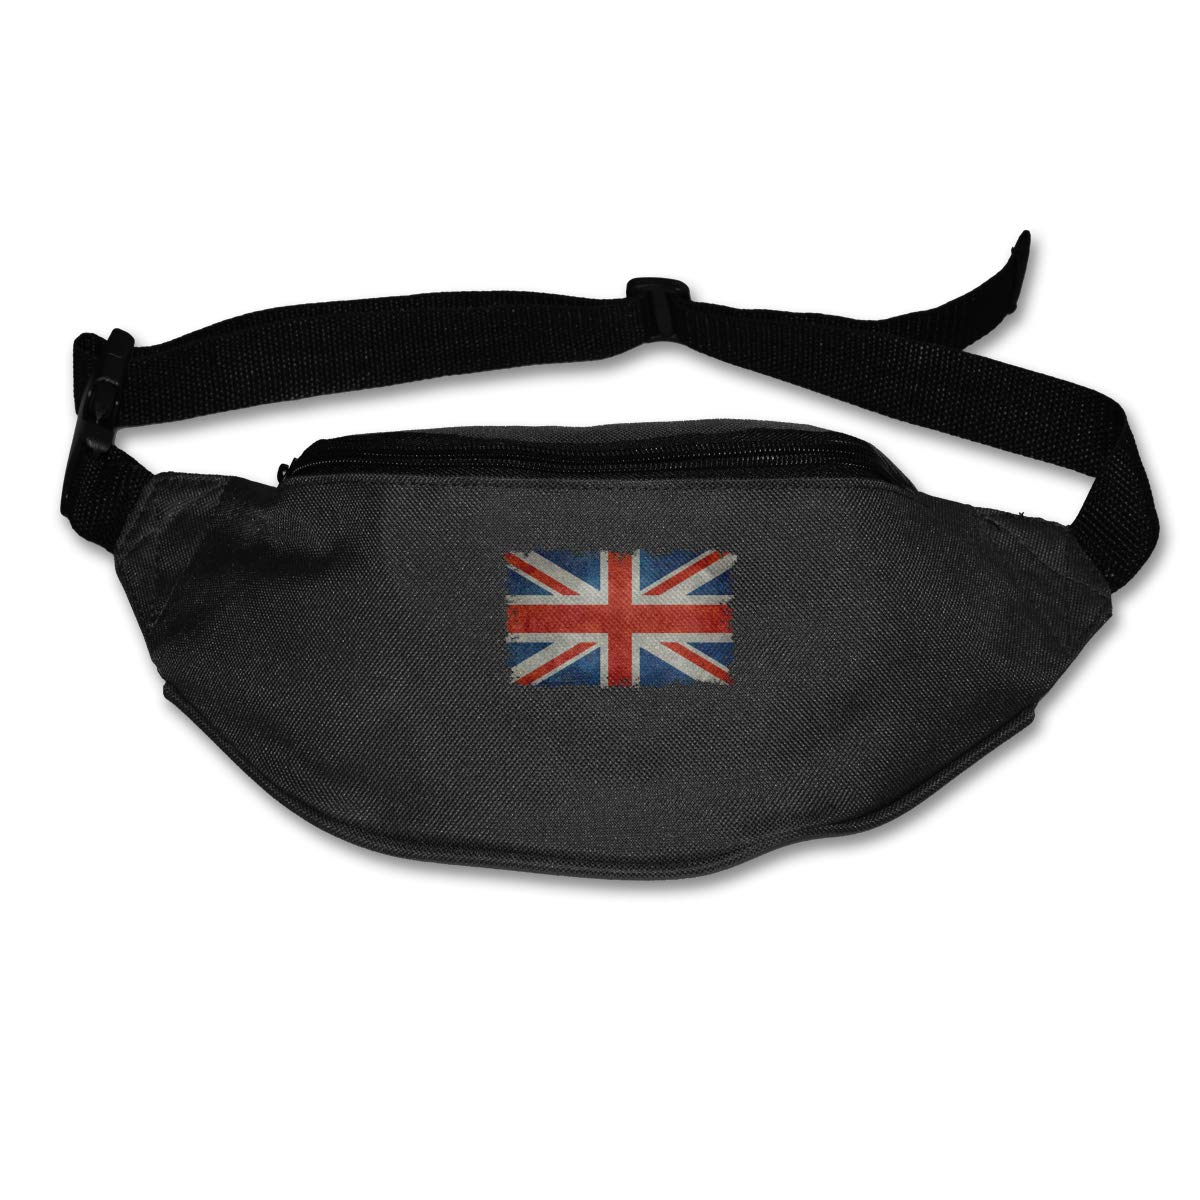 Retro British Flag Sport Waist Pack Fanny Pack Adjustable For Travel